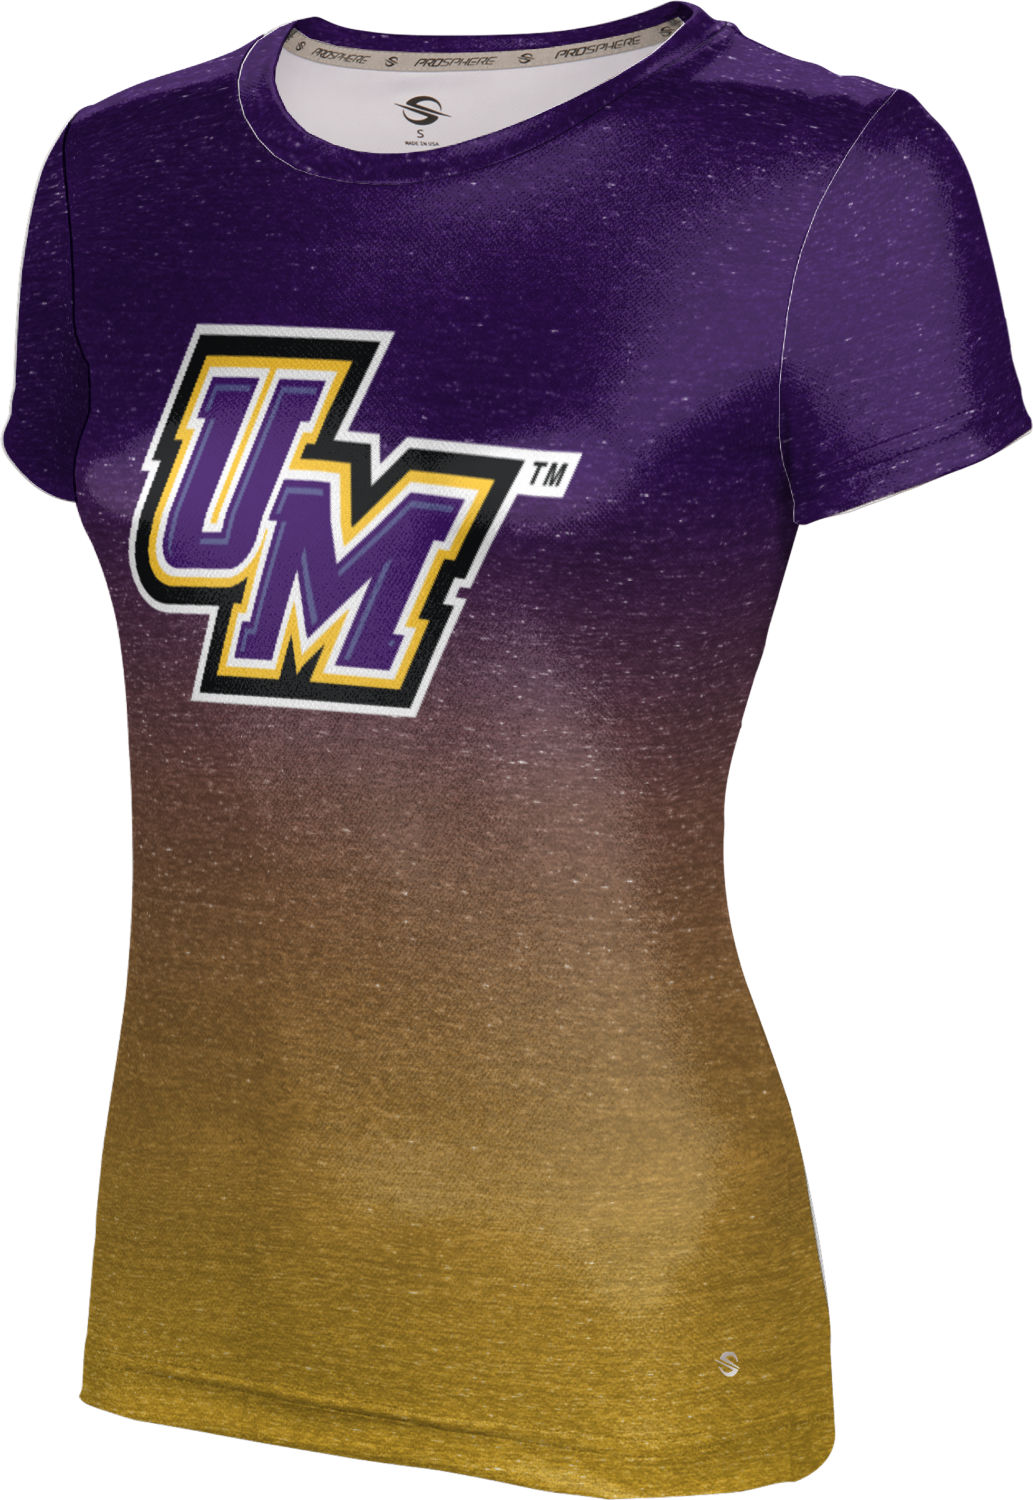 ProSphere Girls' University of Montevallo Ombre Tech Tee